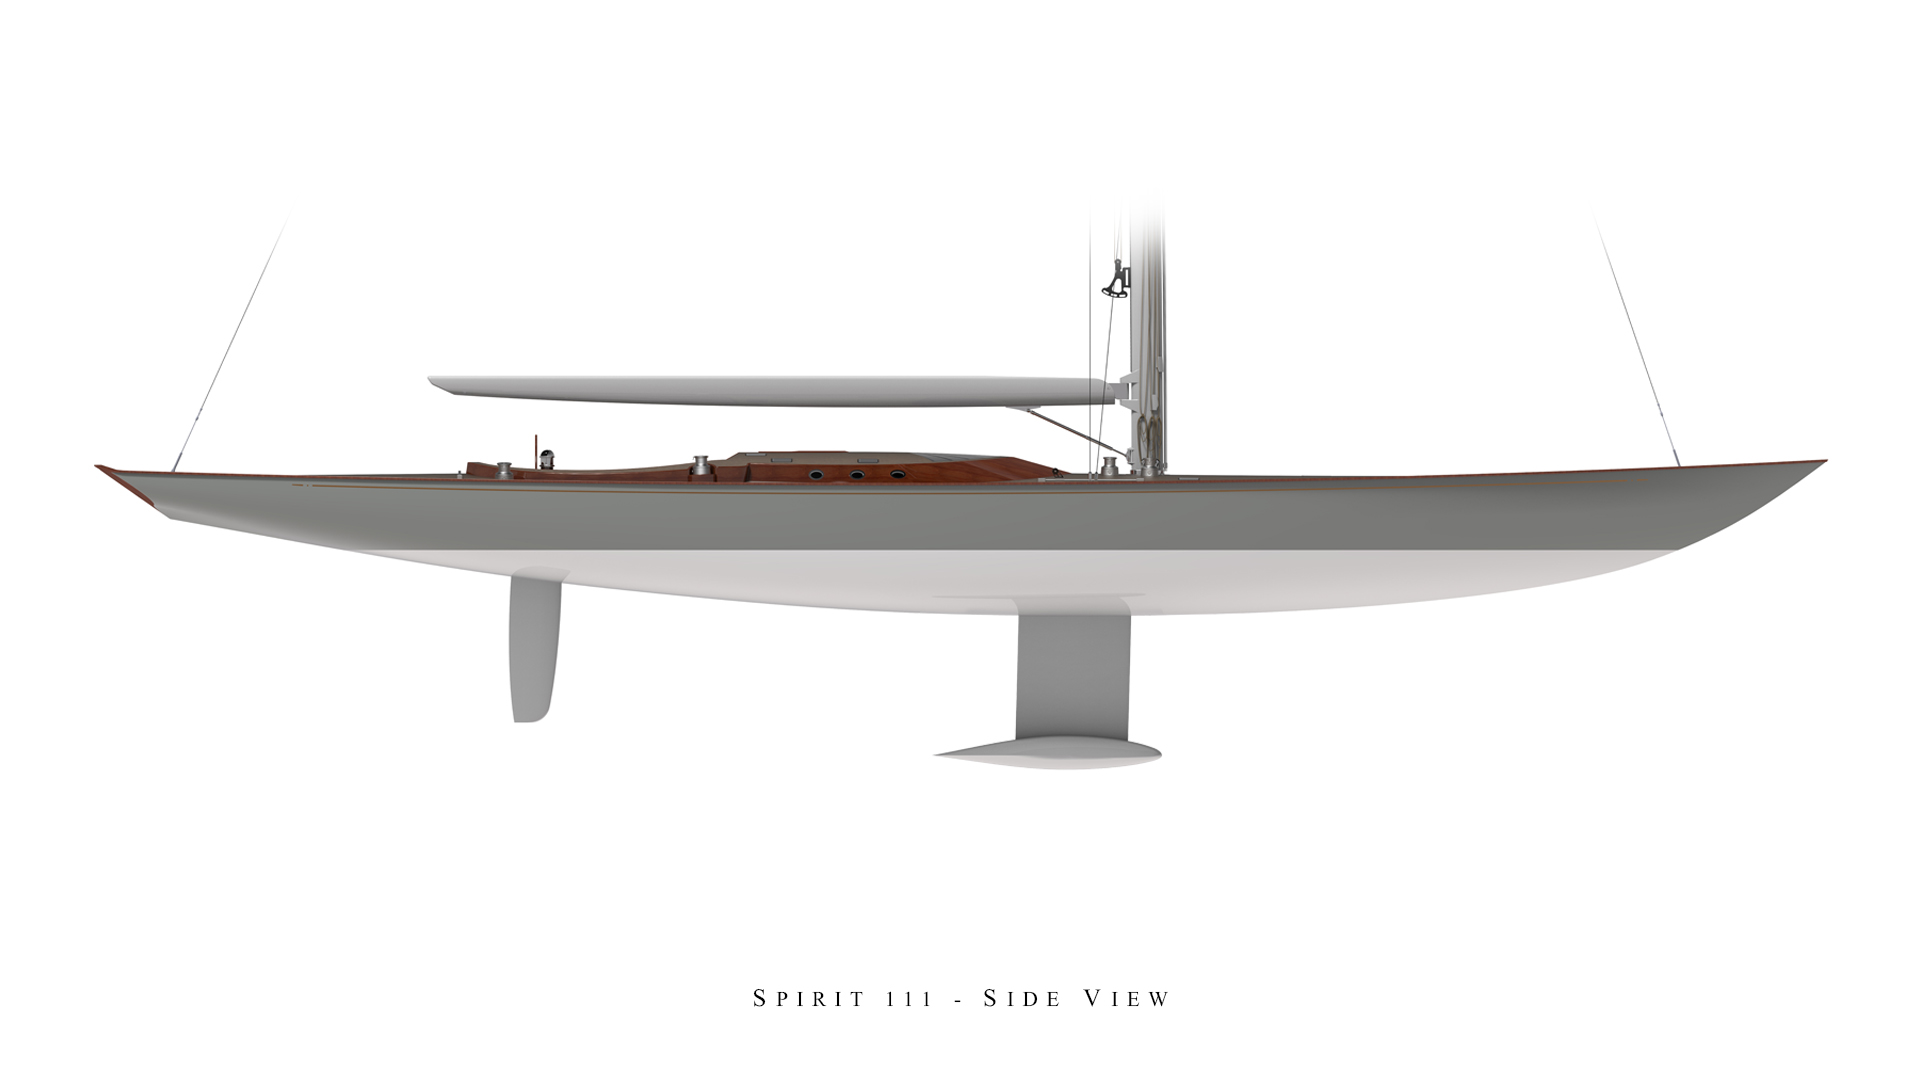 Spirit 111 - Side View